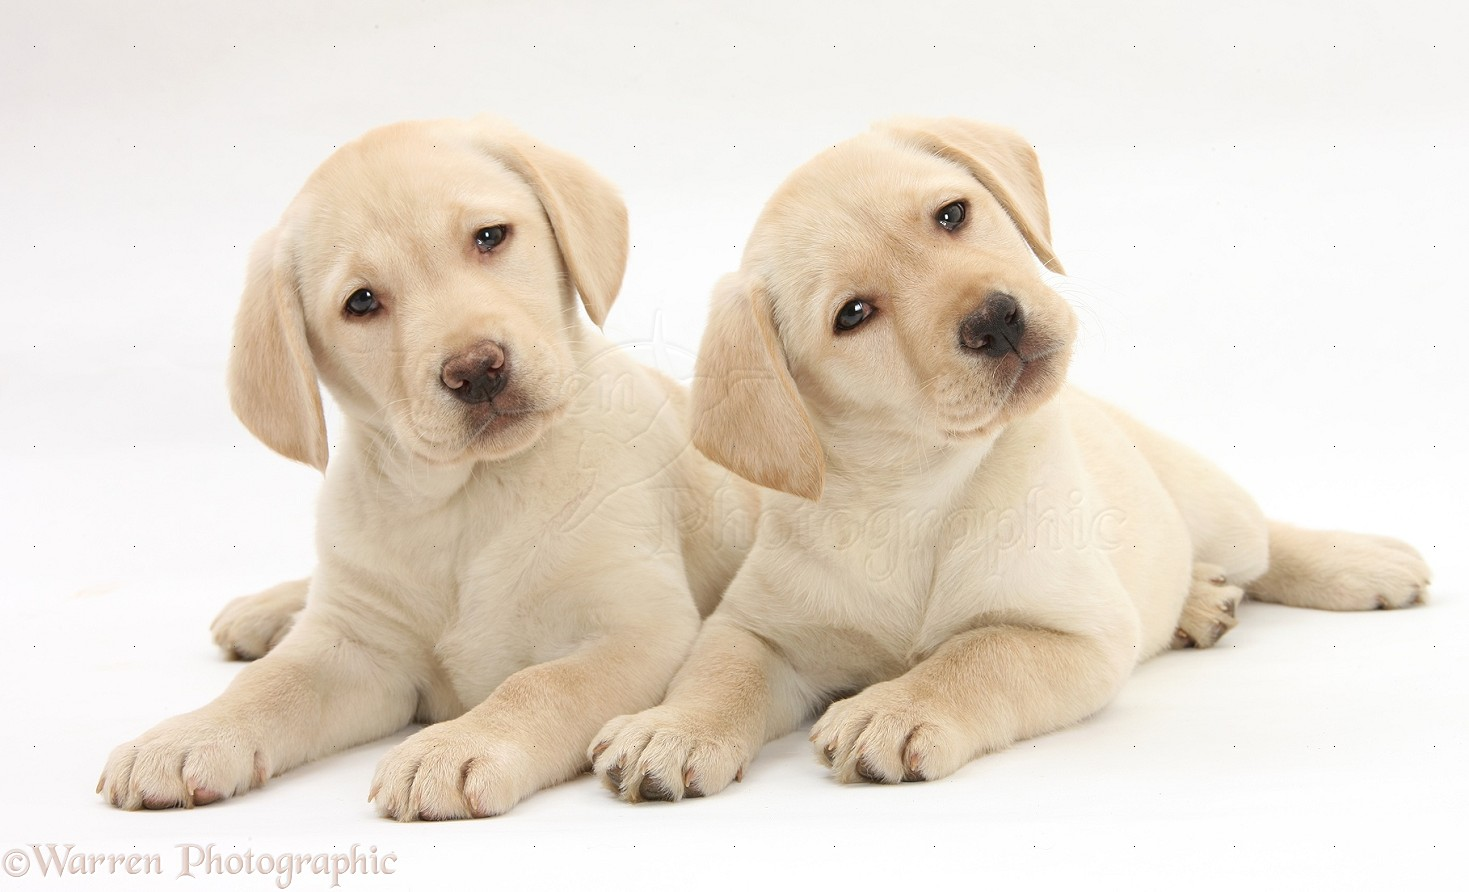 Wp28058 yellow labrador retriever puppies 9 weeks old